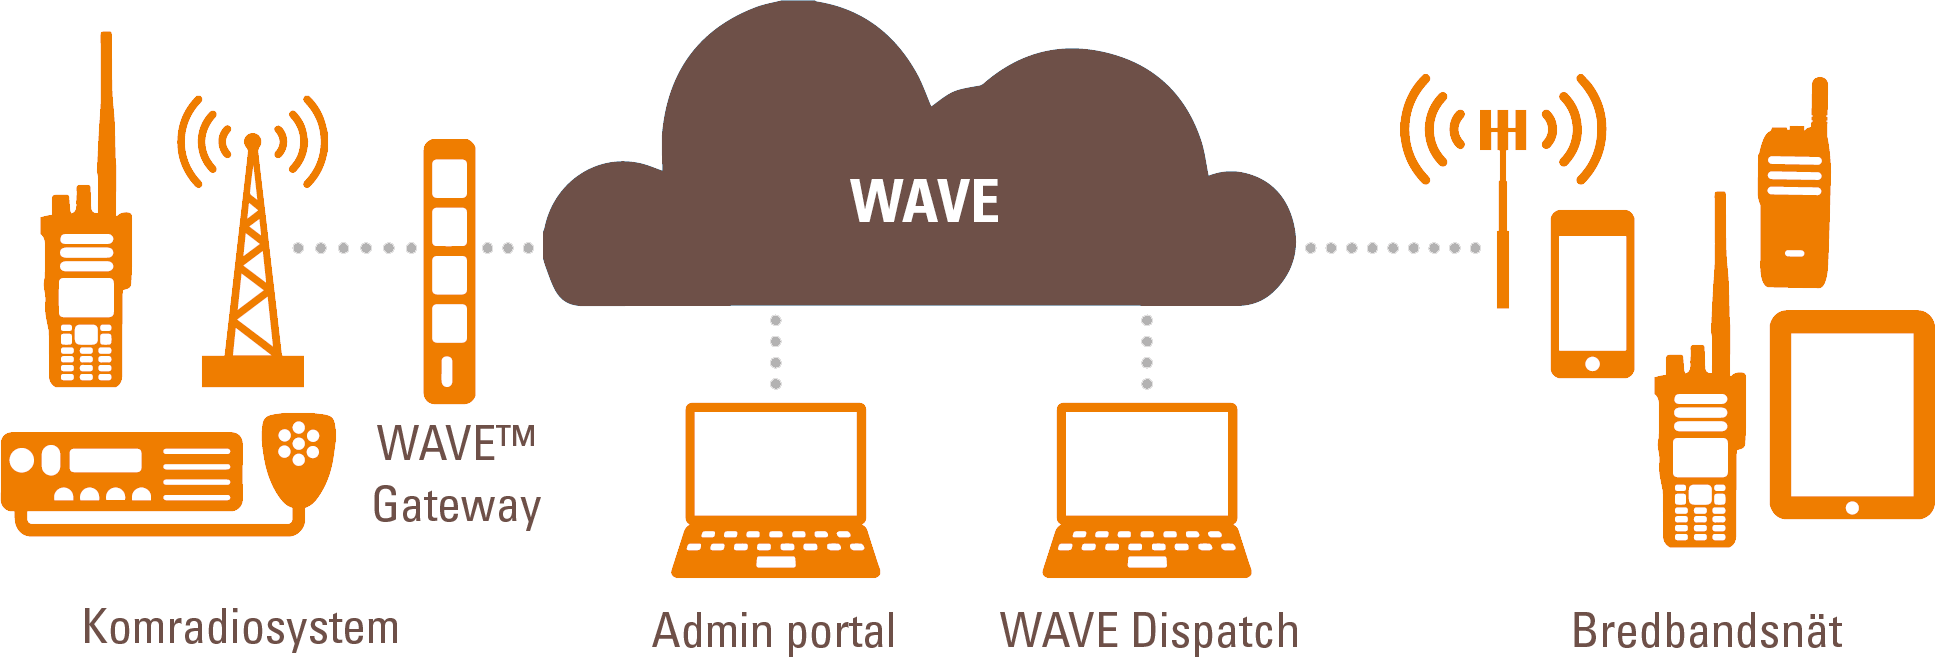 motorola-wave-oncloud-overview